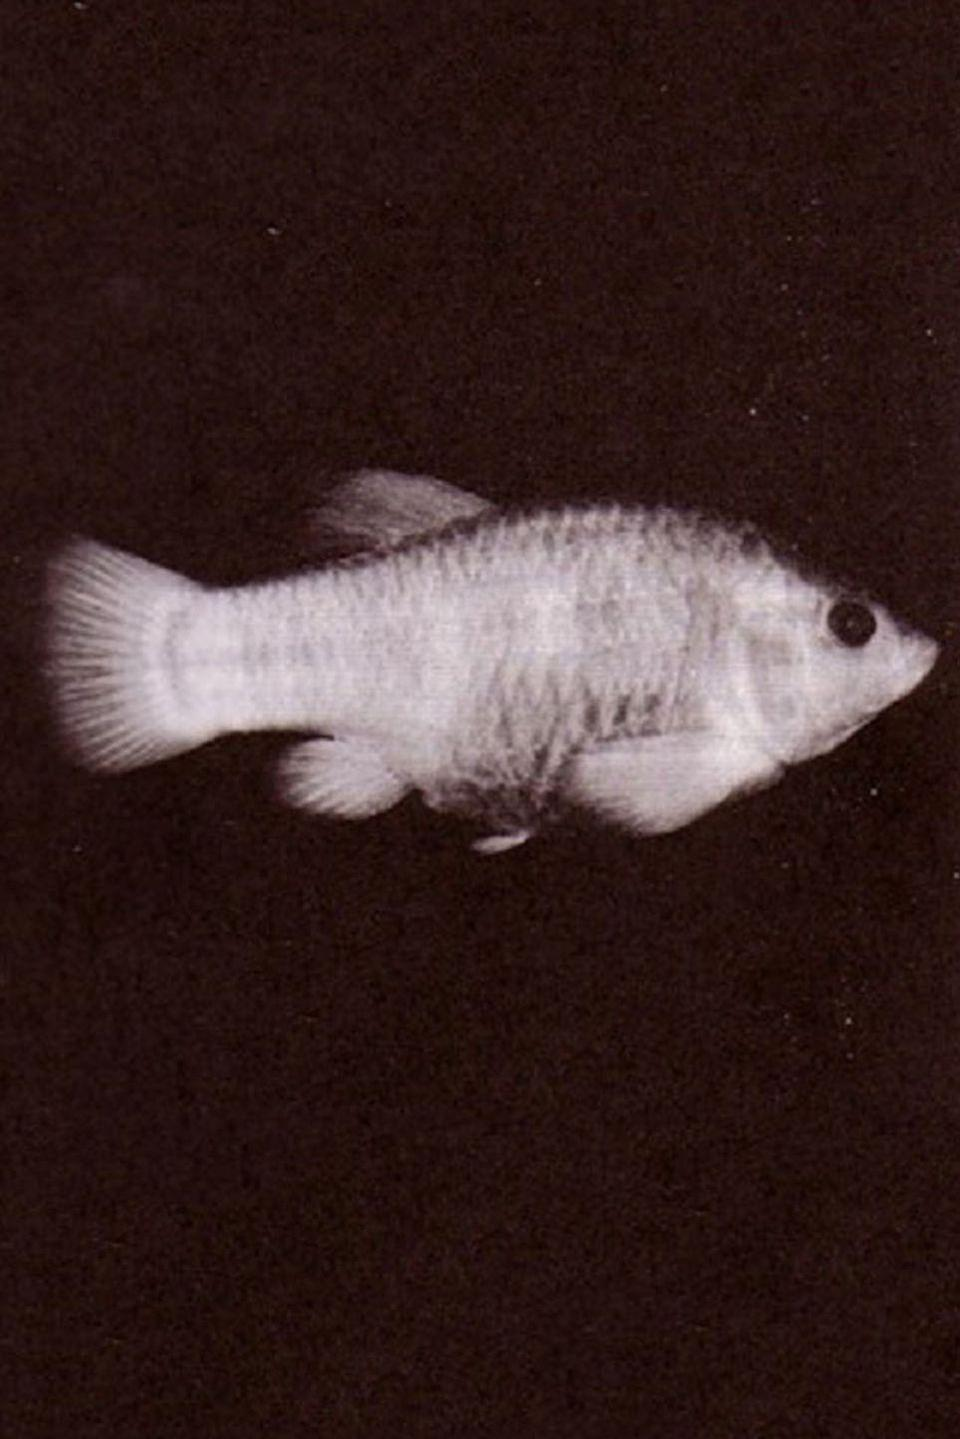 <p>The Tecopa pupfish, a native of the hot springs of the Mojave Desert, has the distinction of being the first animal declared extinct under the provisions of the Endangered Species Act of 1973. The pupfish's decline was precipitated when its natural habitat was encroached upon by developers.</p><p><strong>Cause of Extinction:</strong> the destruction of their natural habitat.</p>